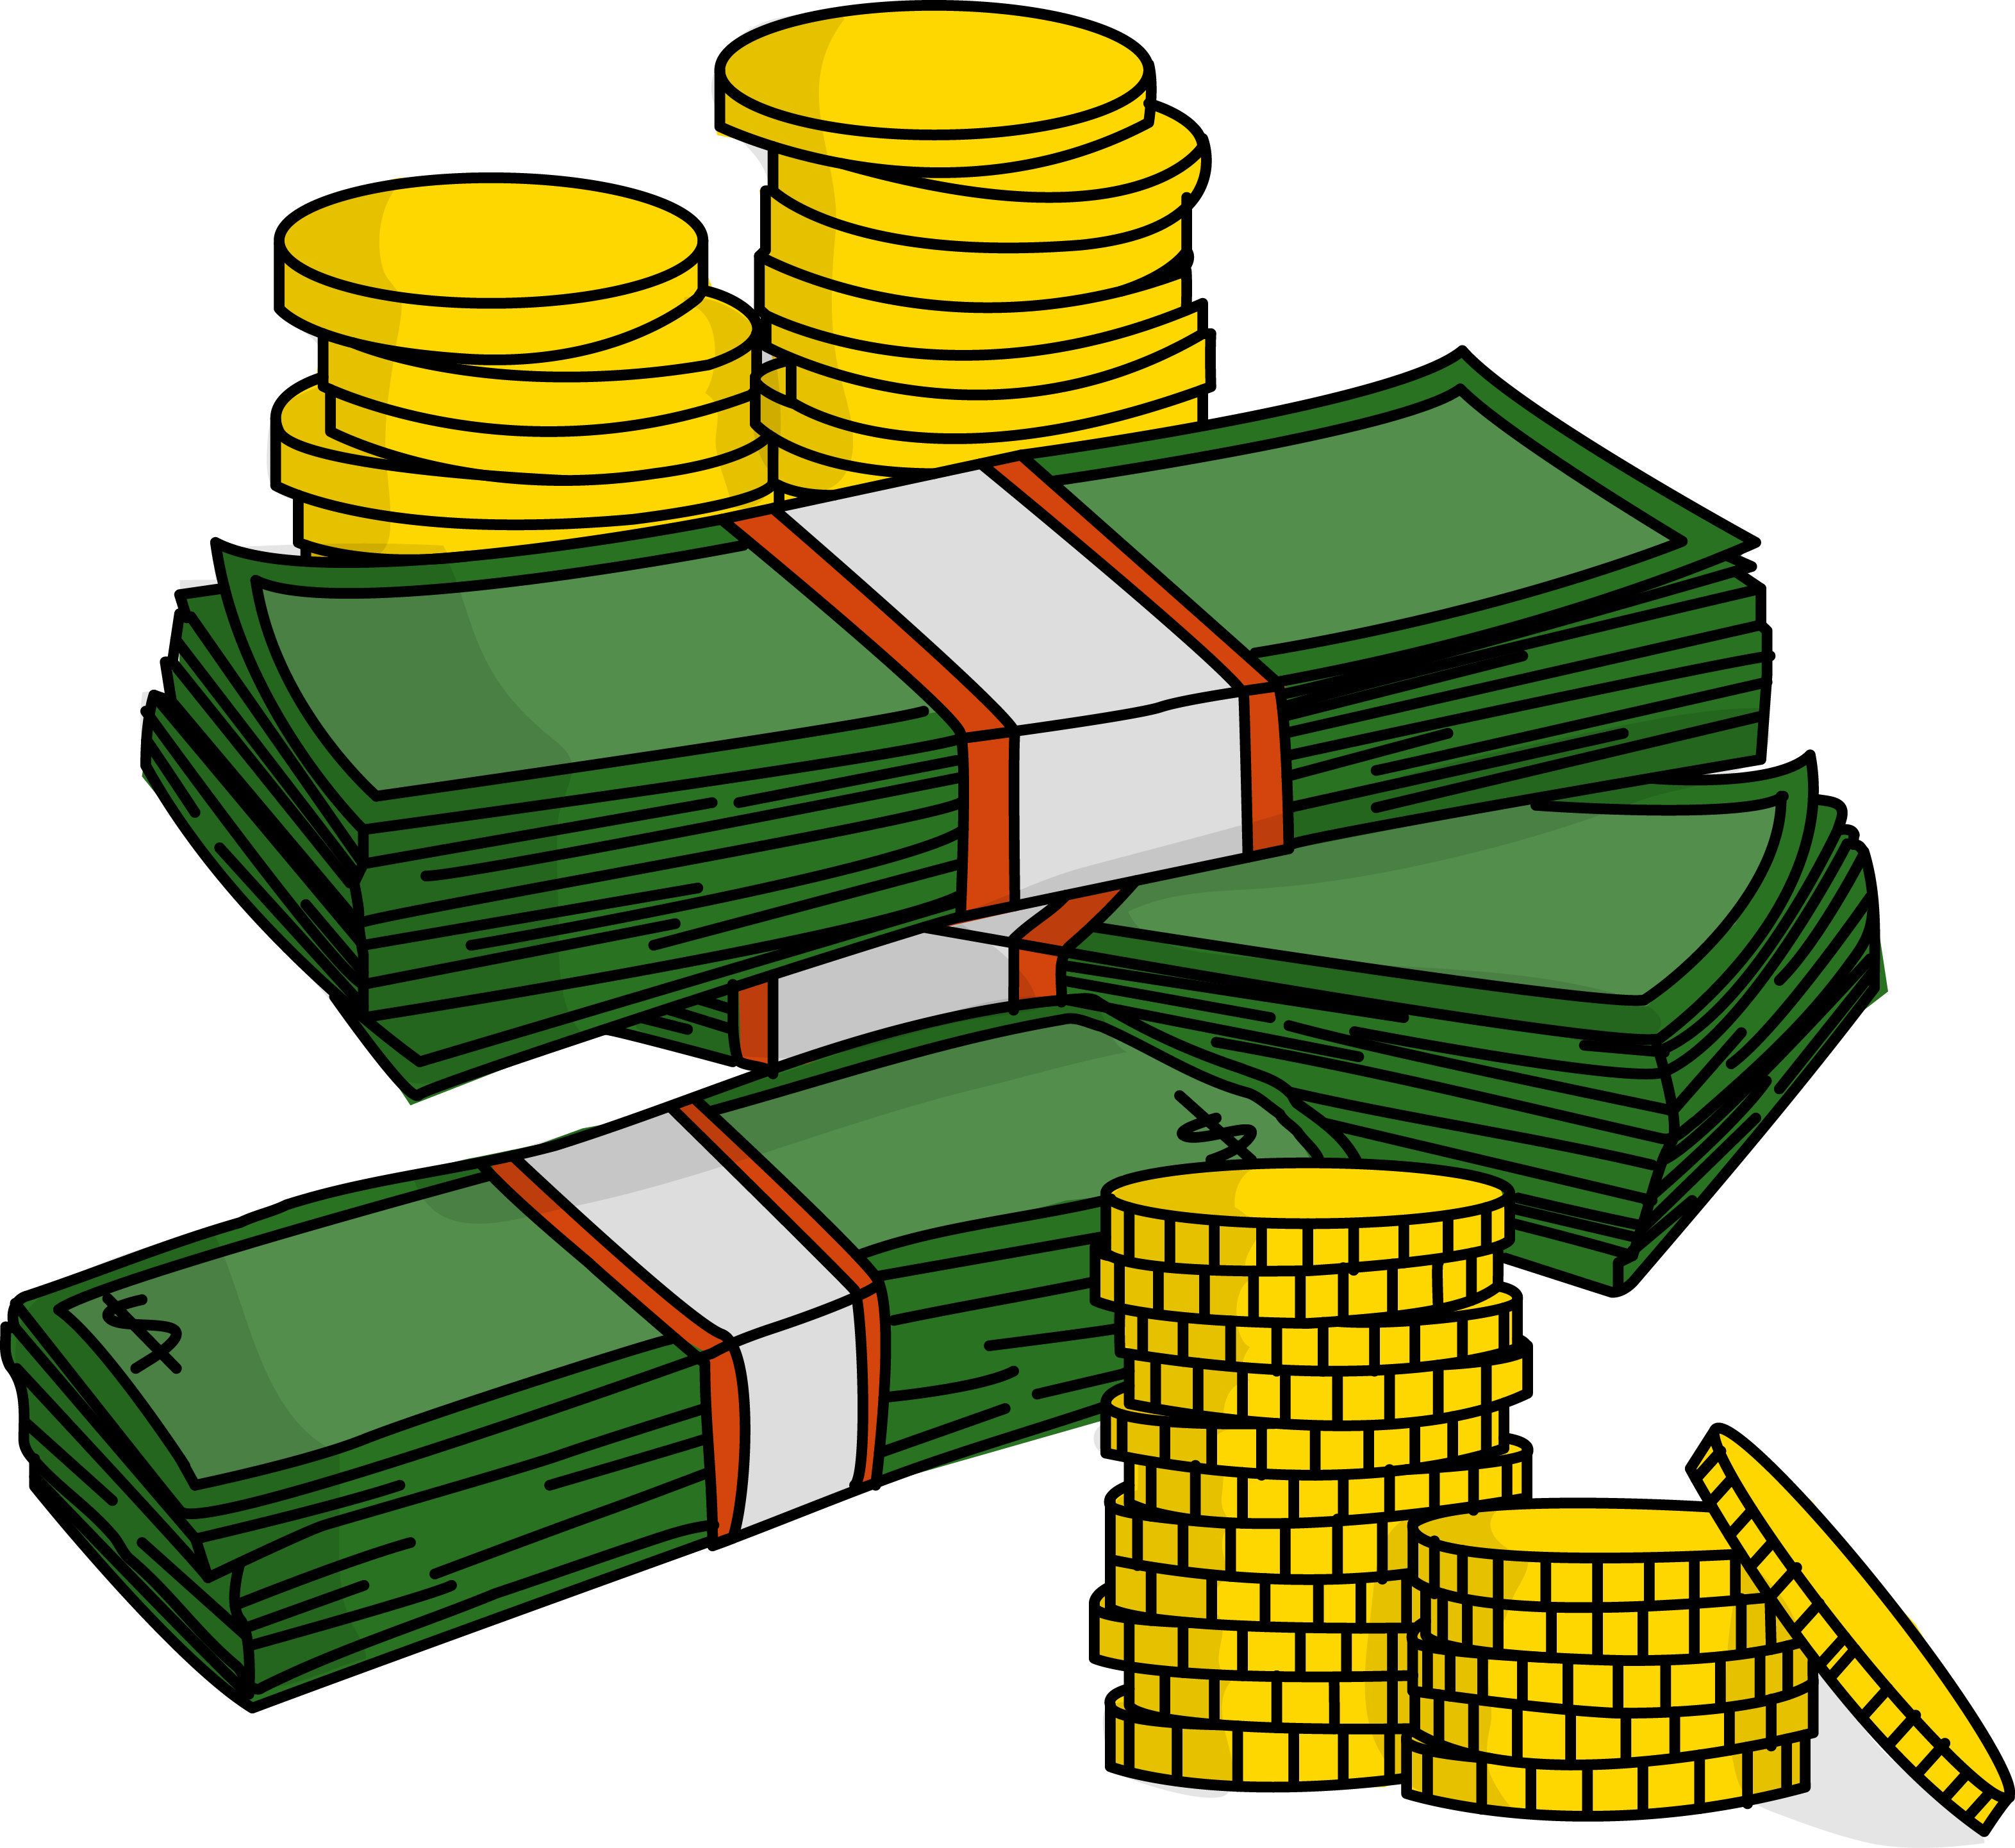 Free Stacks Of Money With Coins High Resolution Clip Art | All ..